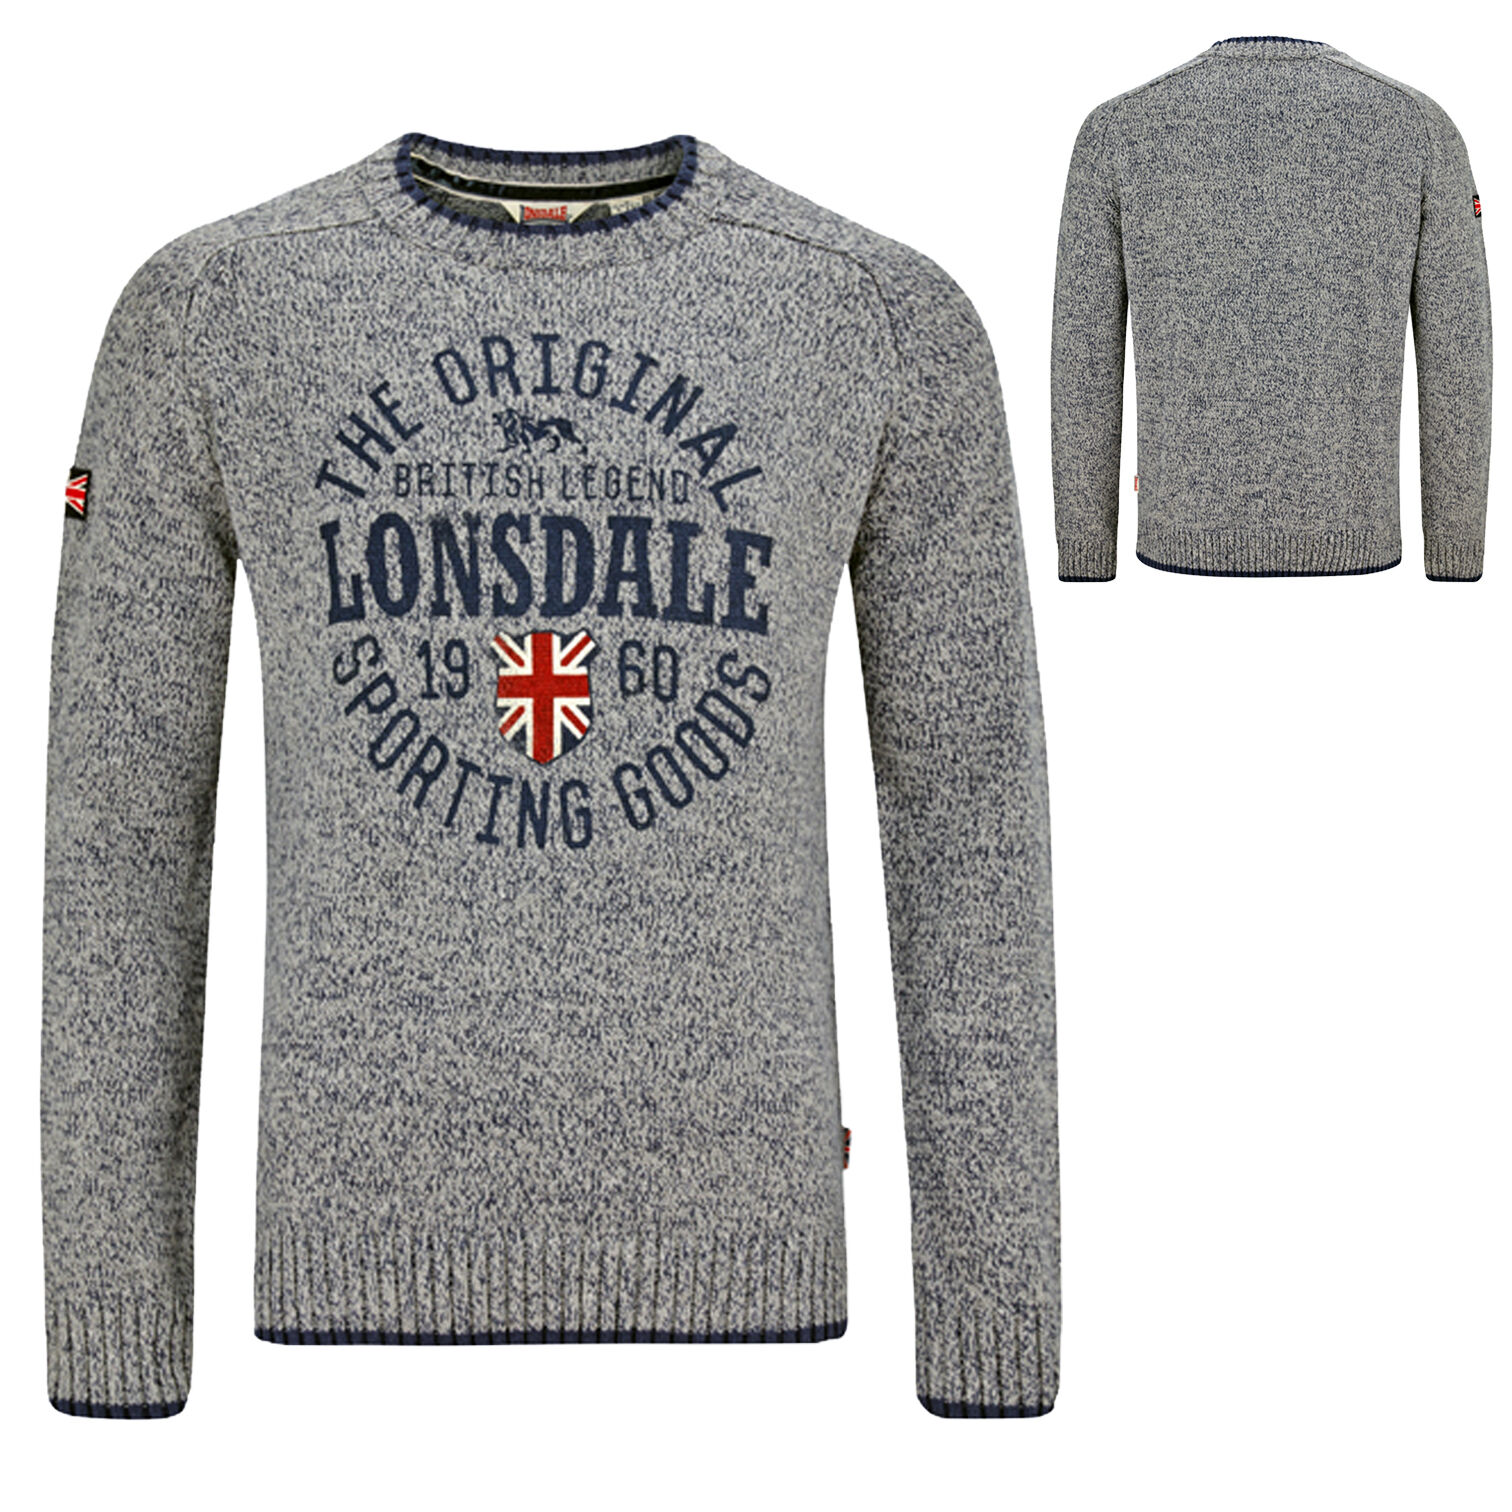 Pull Over Origin Lonsdale Borden Grey Blue Knitted Sweater Pullover Jumper Union Jack Sweatshirt Xxl